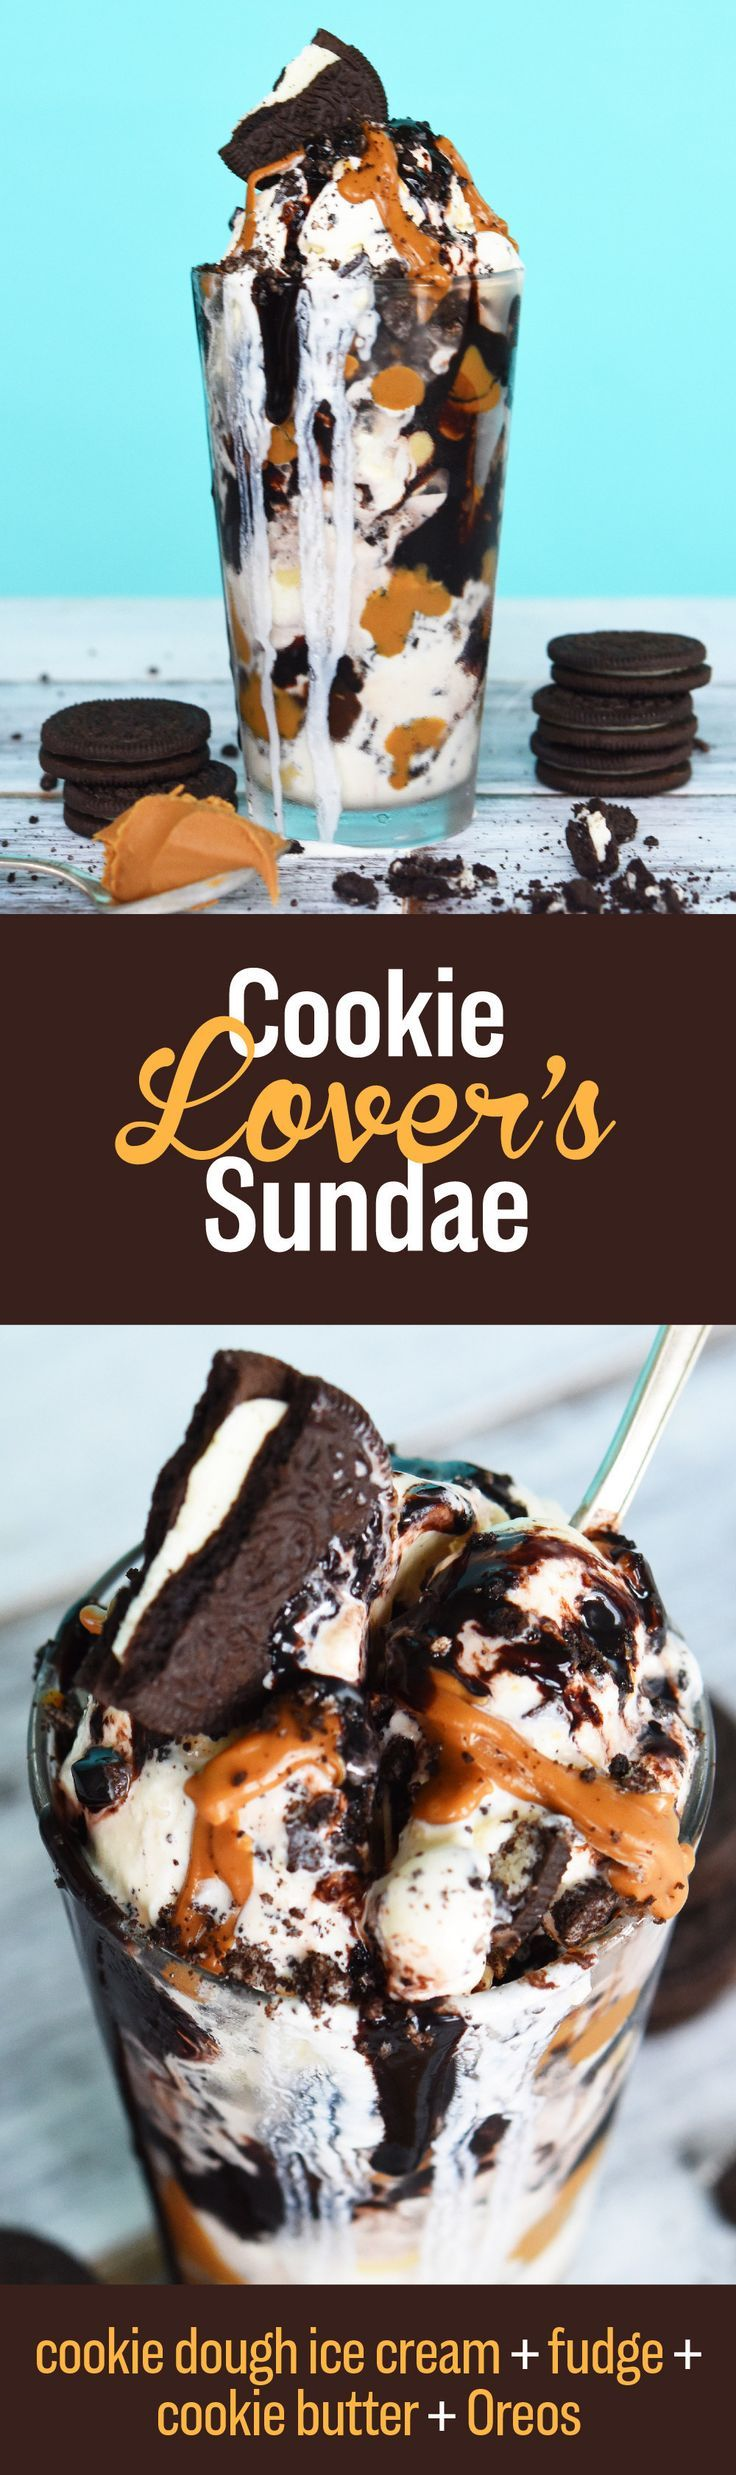 7 Insanely Delicious Sundaes You Need To Eat Before Summer Is Over